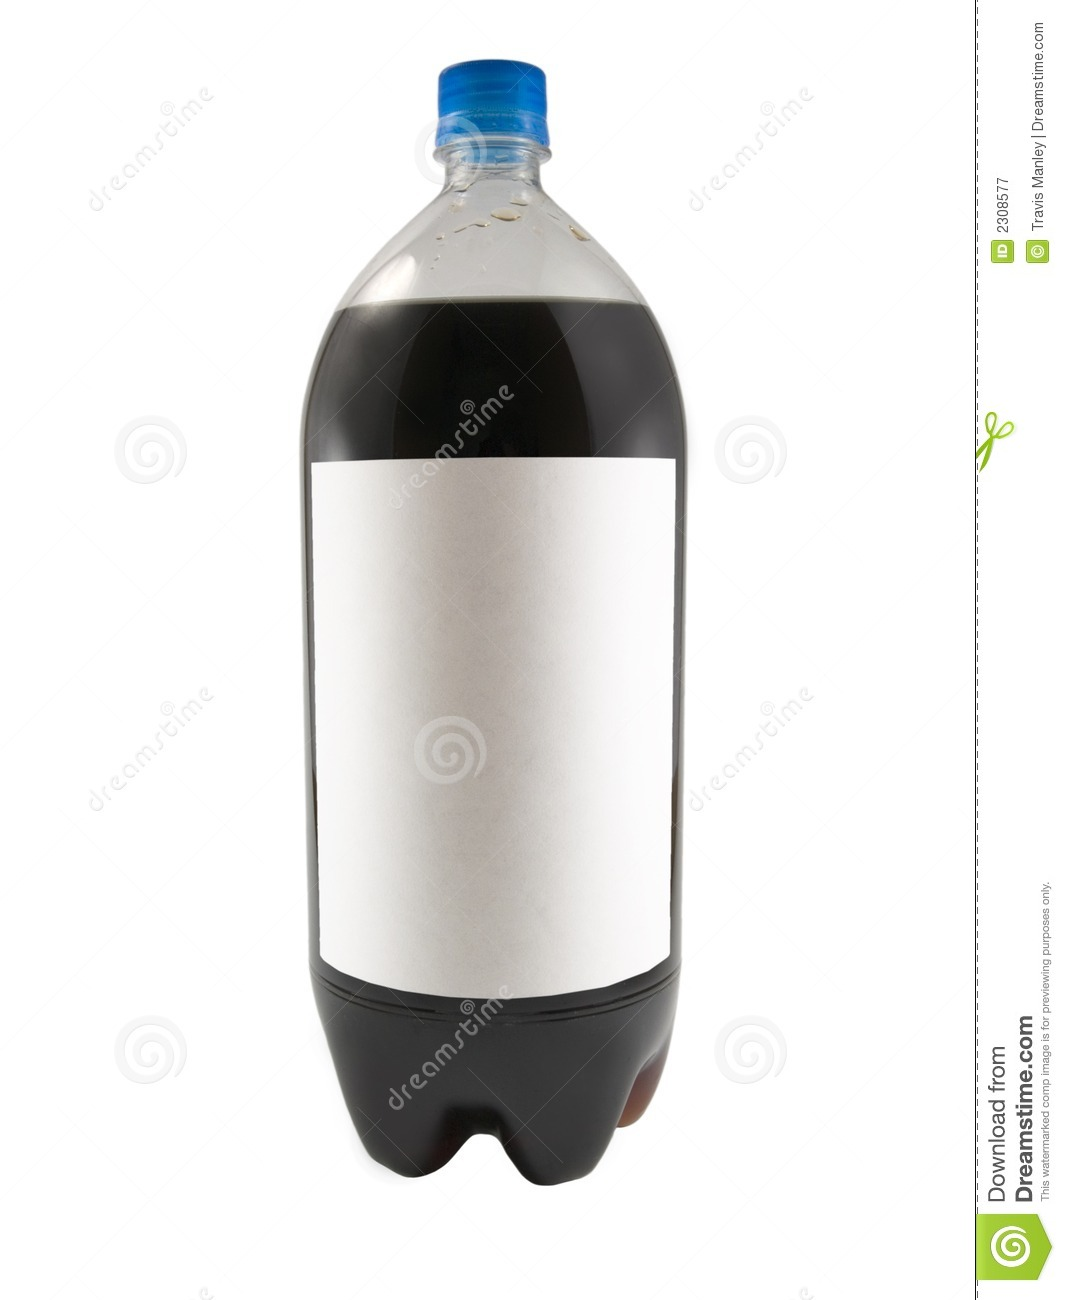 hight resolution of a close up on a soda bottle isolated on a white background with a blank label